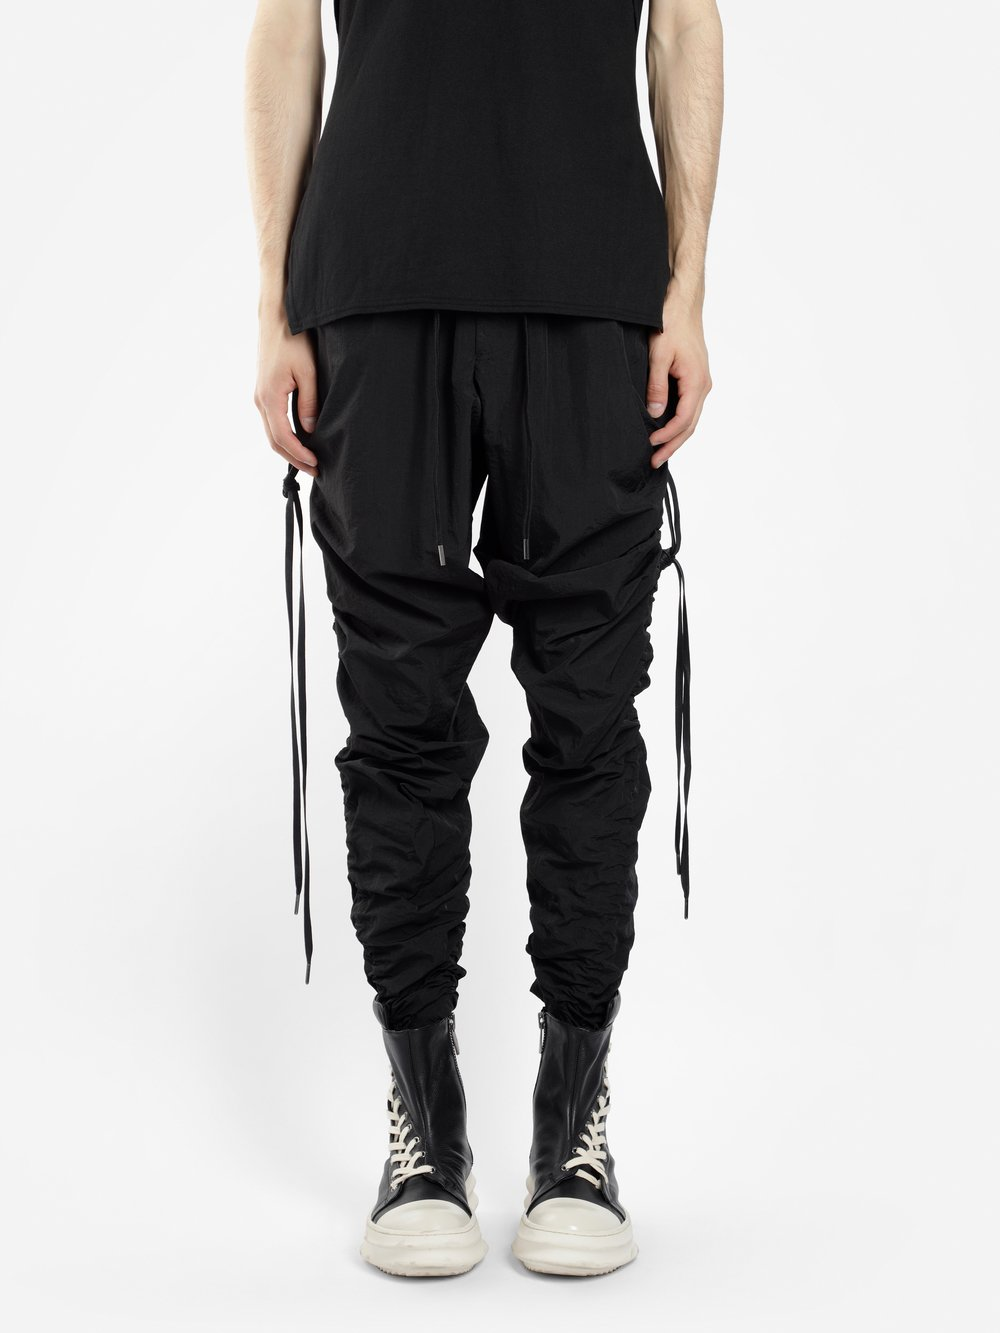 D.GNAK BY KANG.D MEN'S BLACK LATERAL STRING TUNNEL TROUSERS